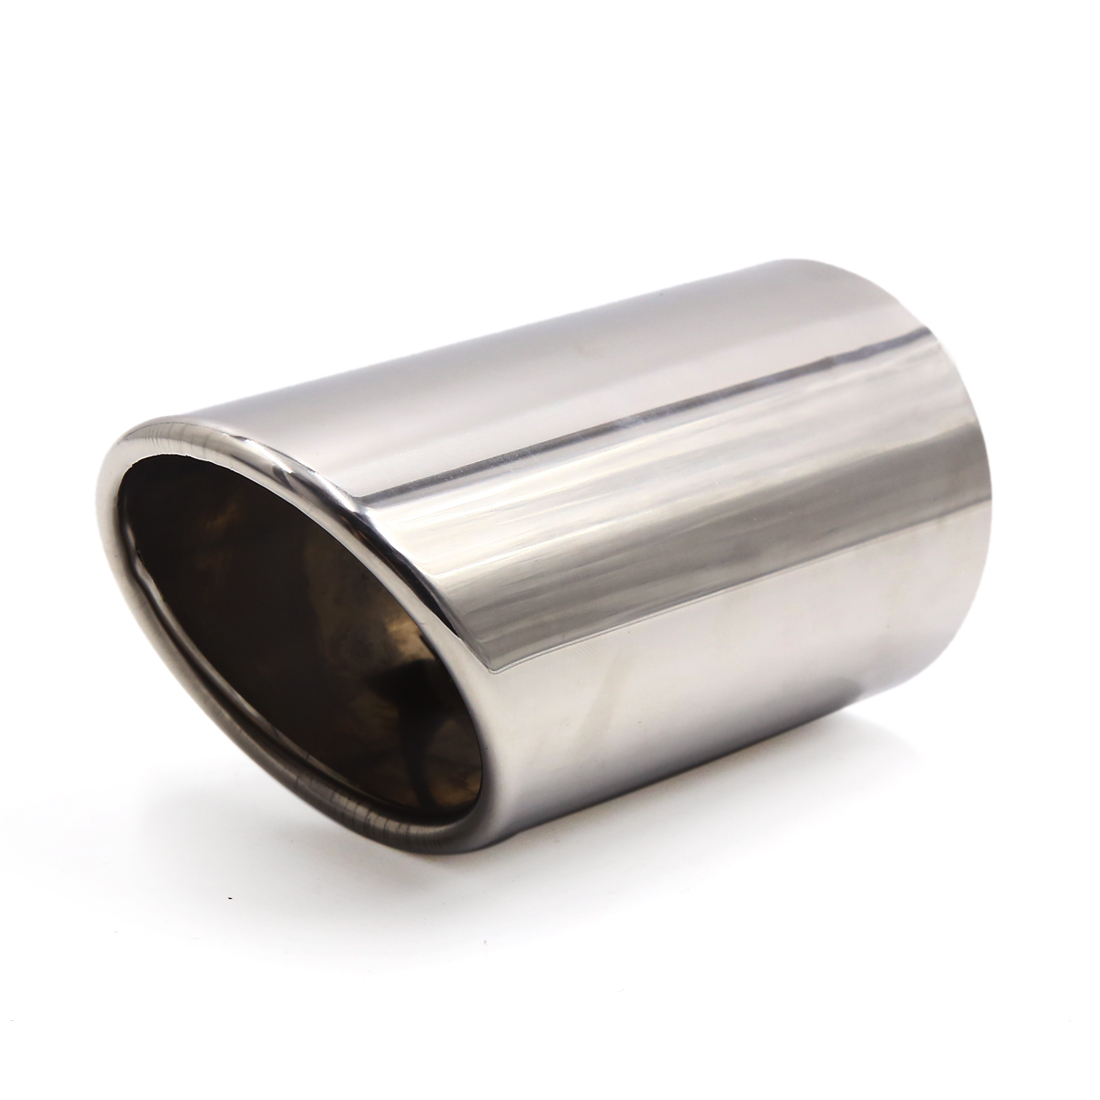 """73mm 2.87"""" Inlet Dia Stainless Steel Car Exhaust Tail Muffler Tip Pipe"""